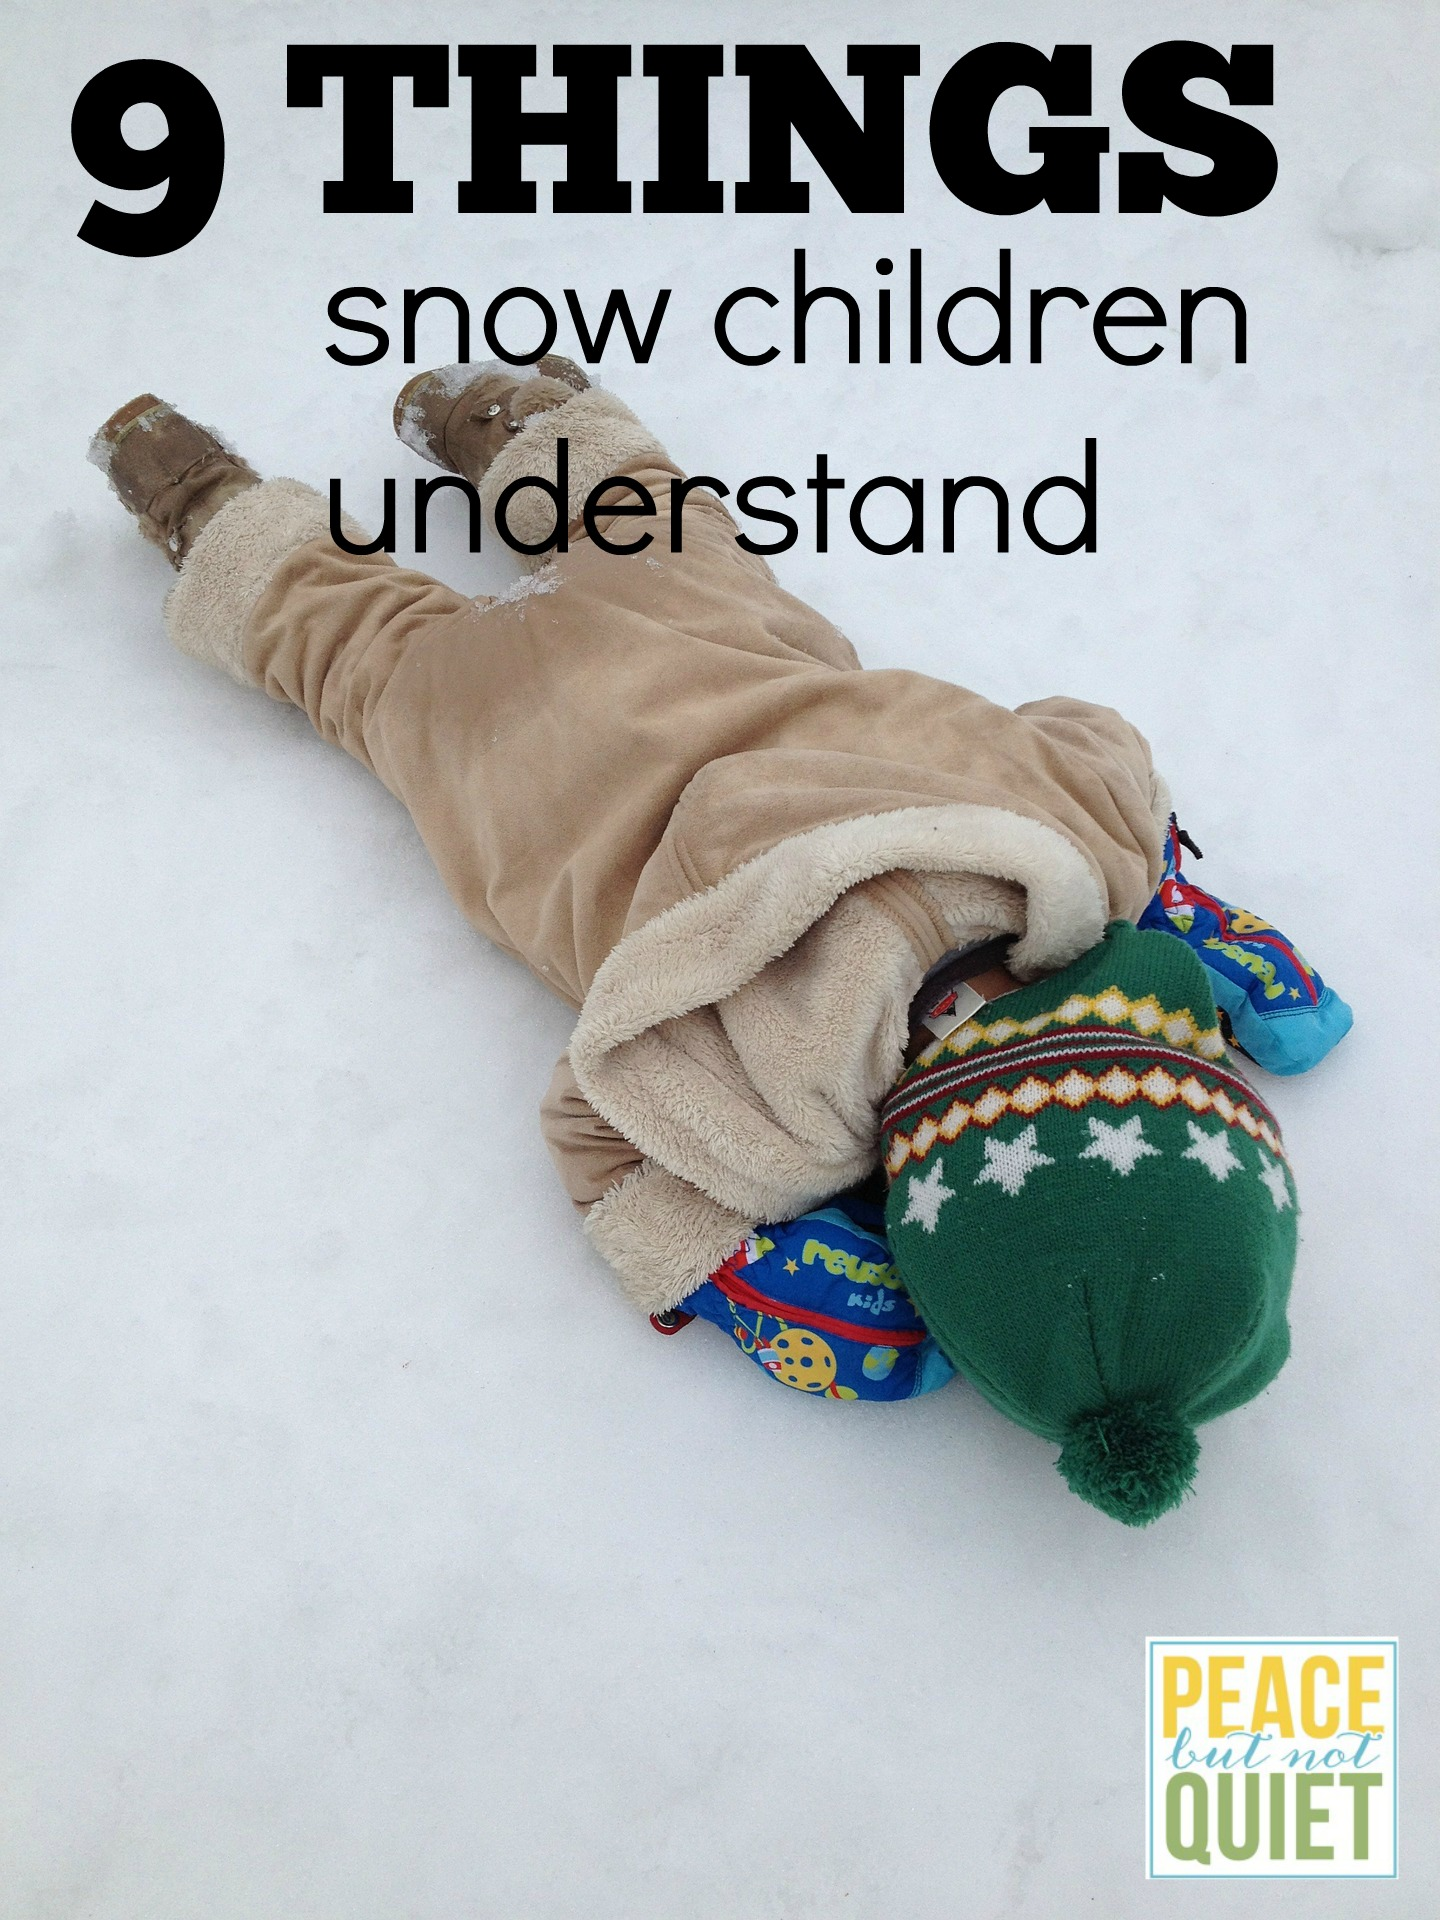 9 Things Snow Children Understand